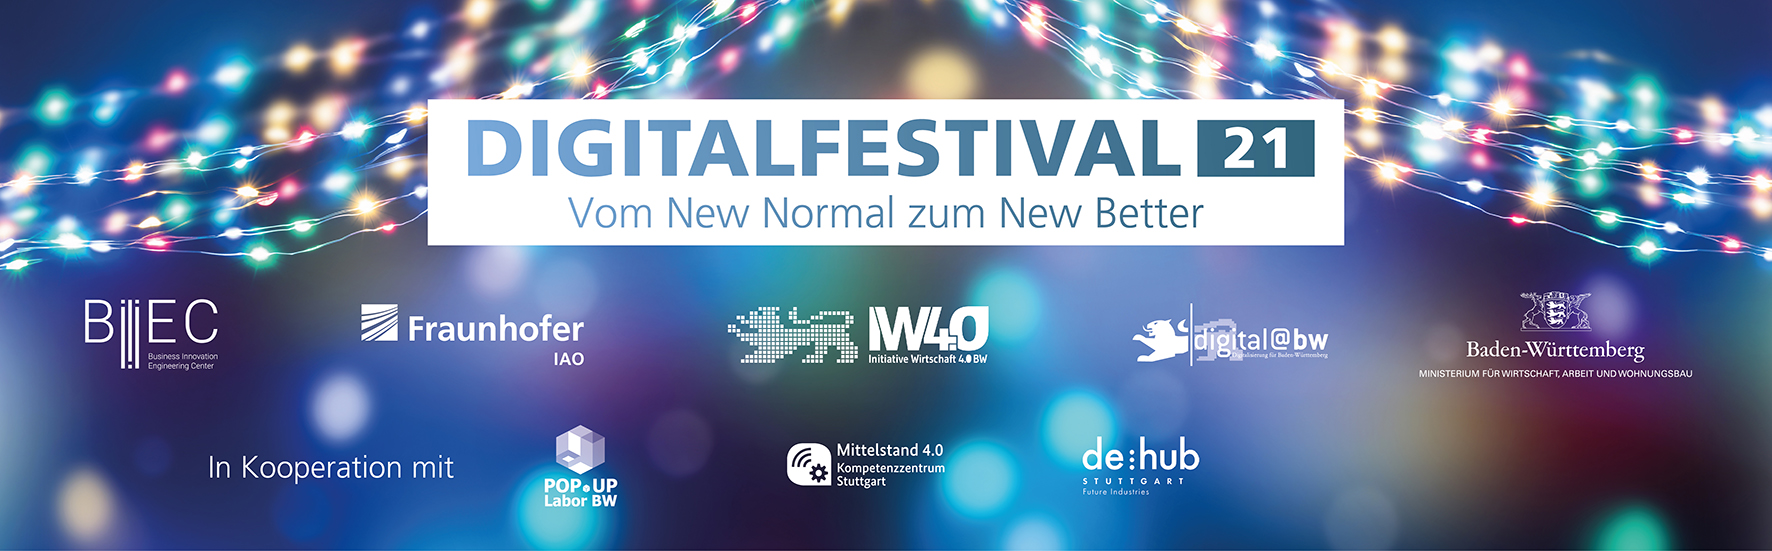 "Keyvisual ""Digitalfestival 2021"" (Bildquelle: winyu - stock.adobe.com und Fraunhofer IAO)"